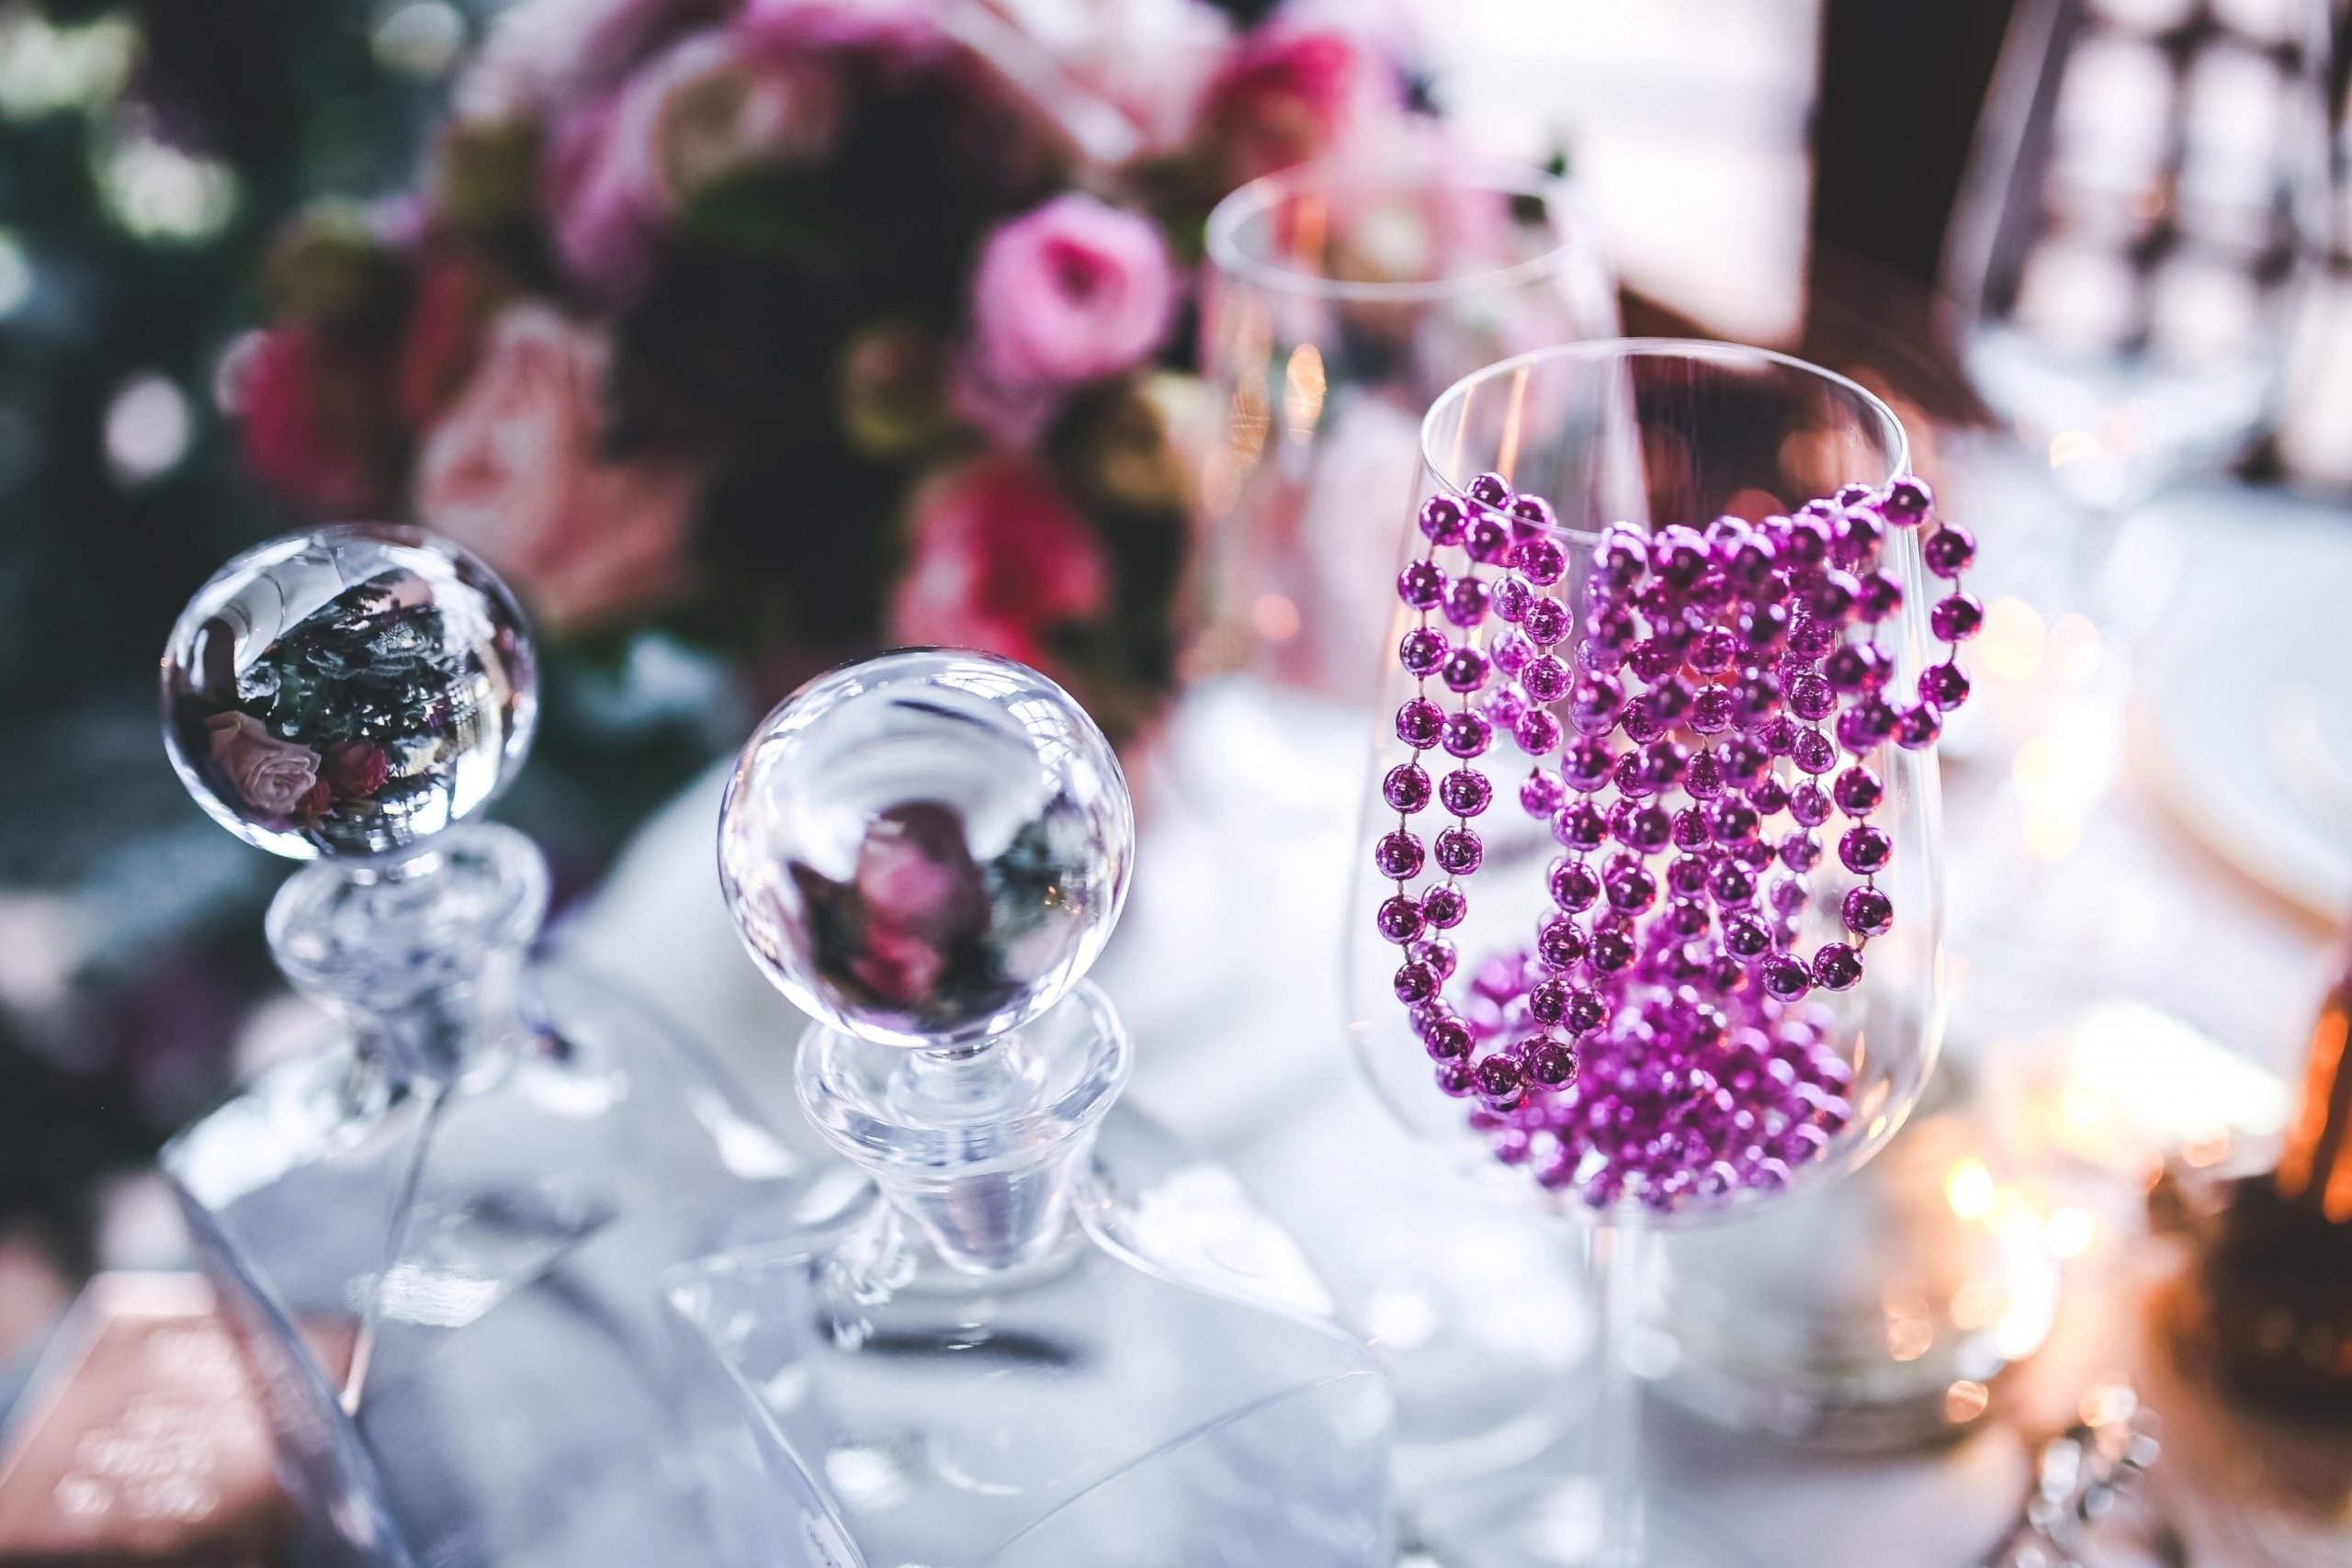 Mardi gras beads in an empty wine glass